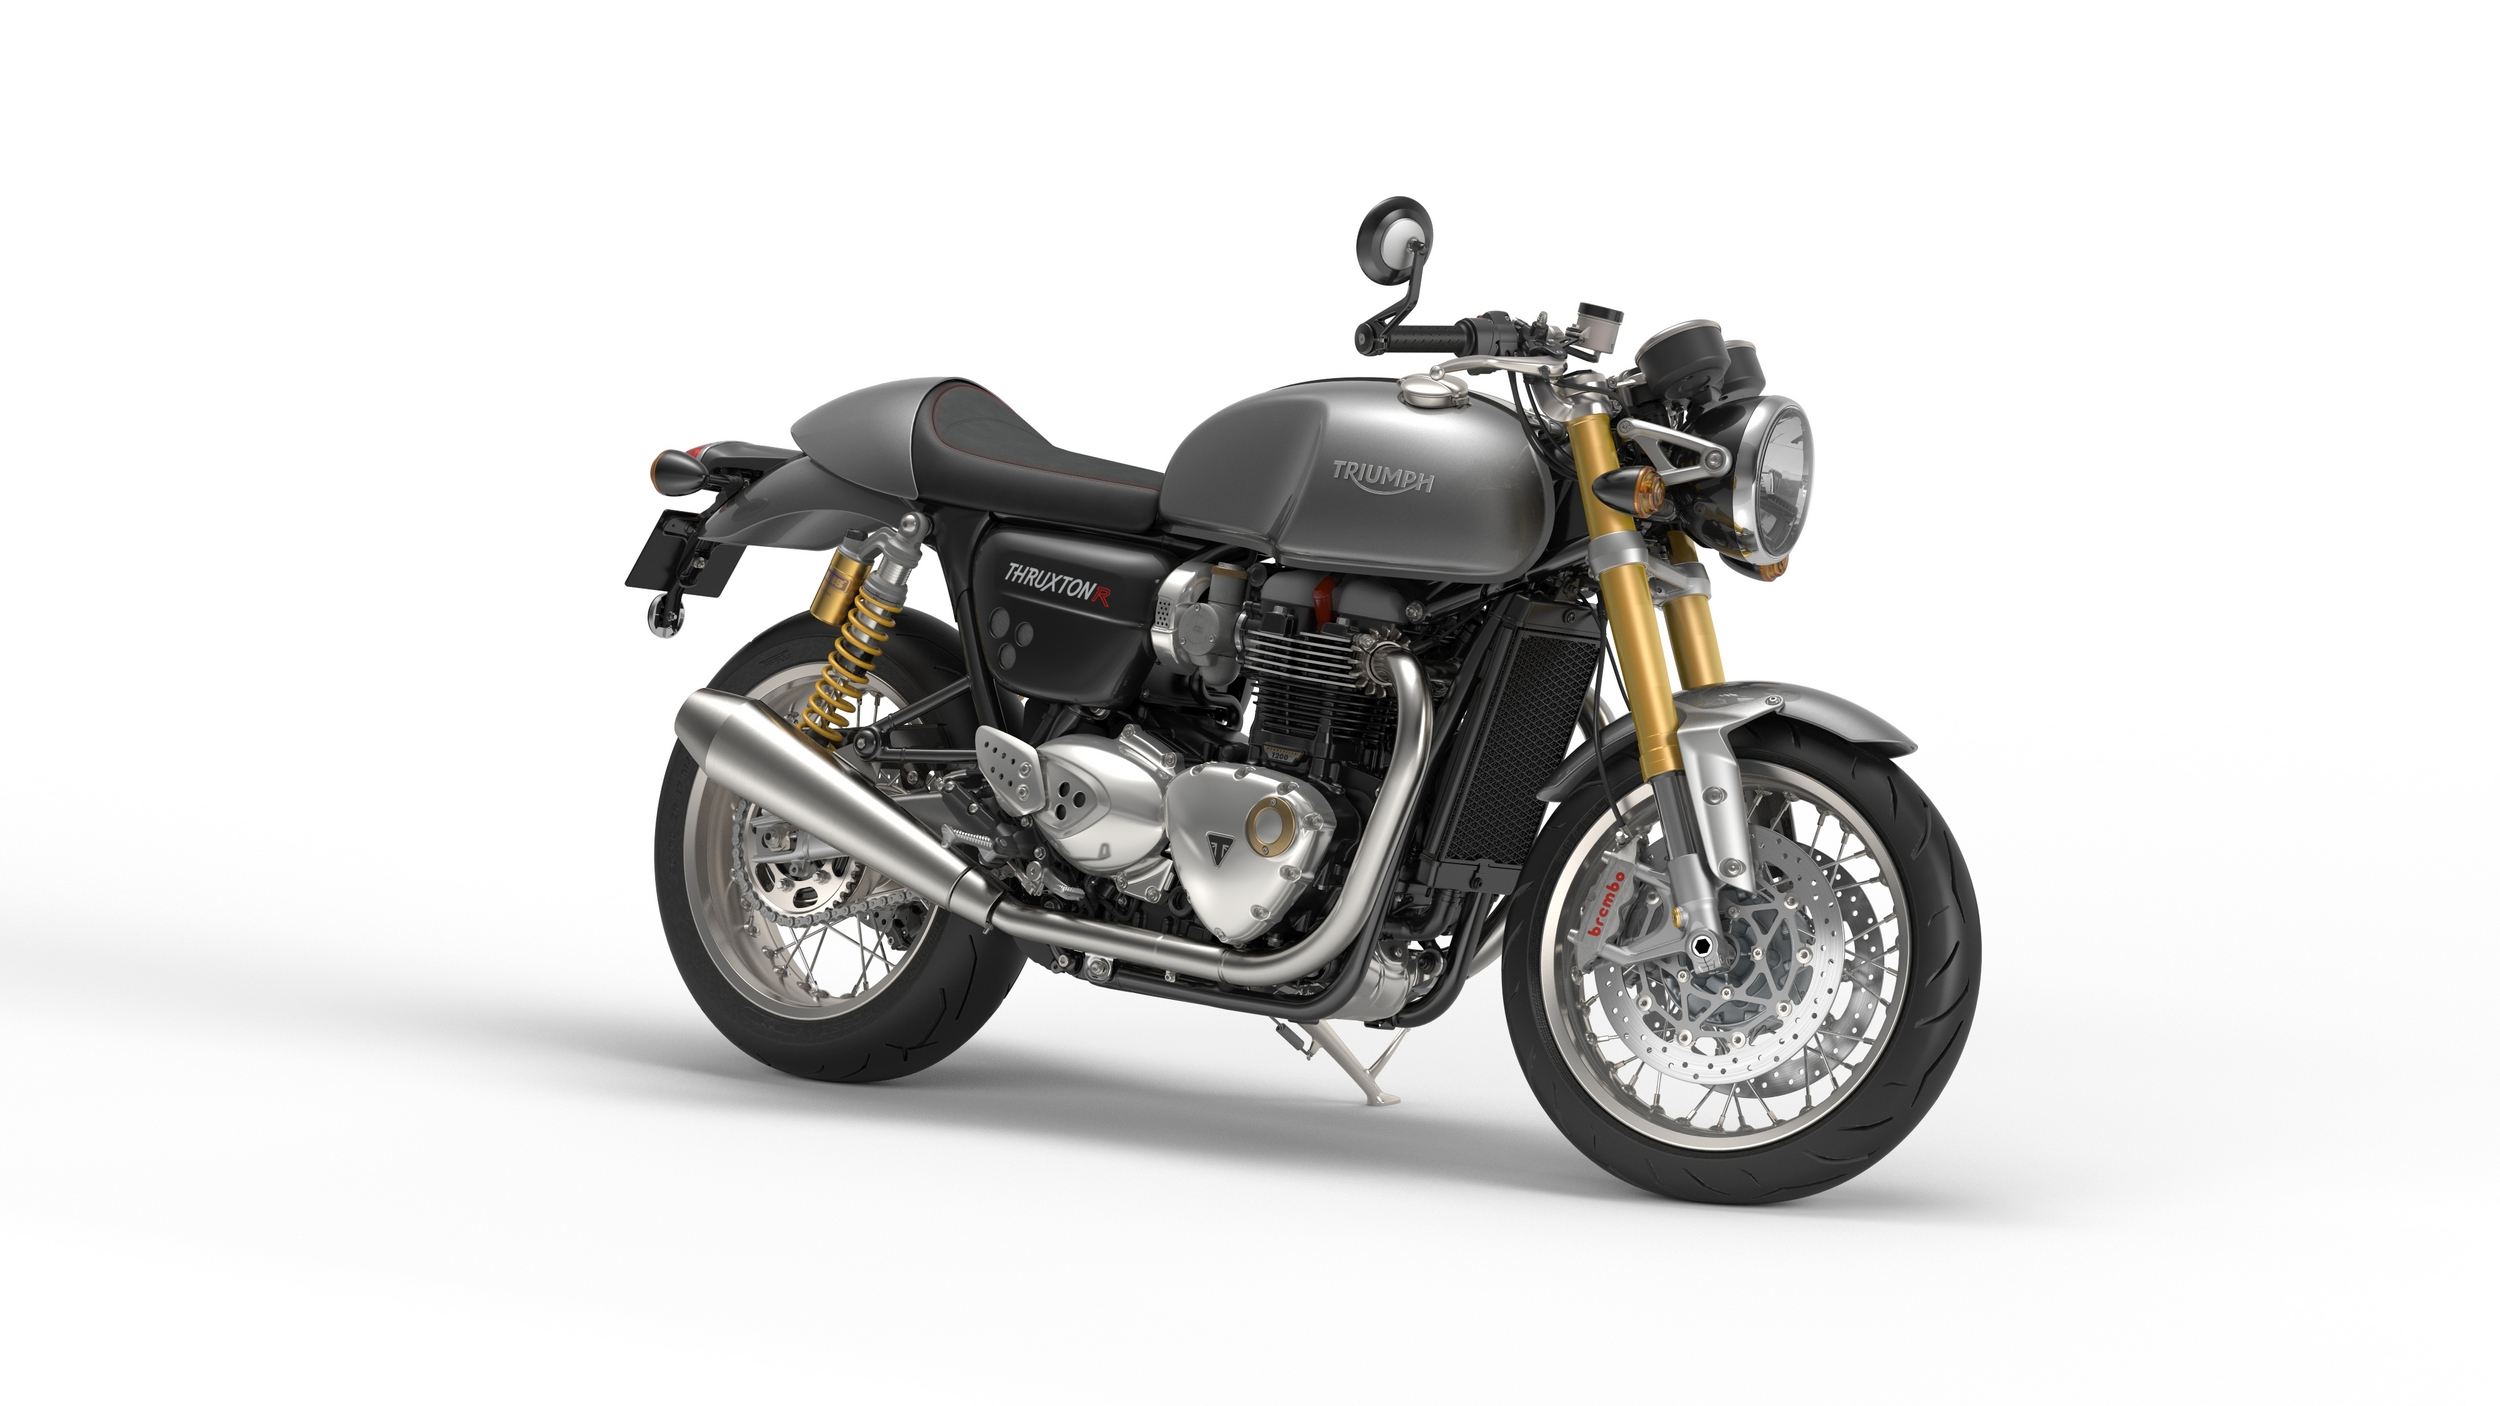 Triumph Motorcycles confirmed for Built In Britain - Classic Motorbikes